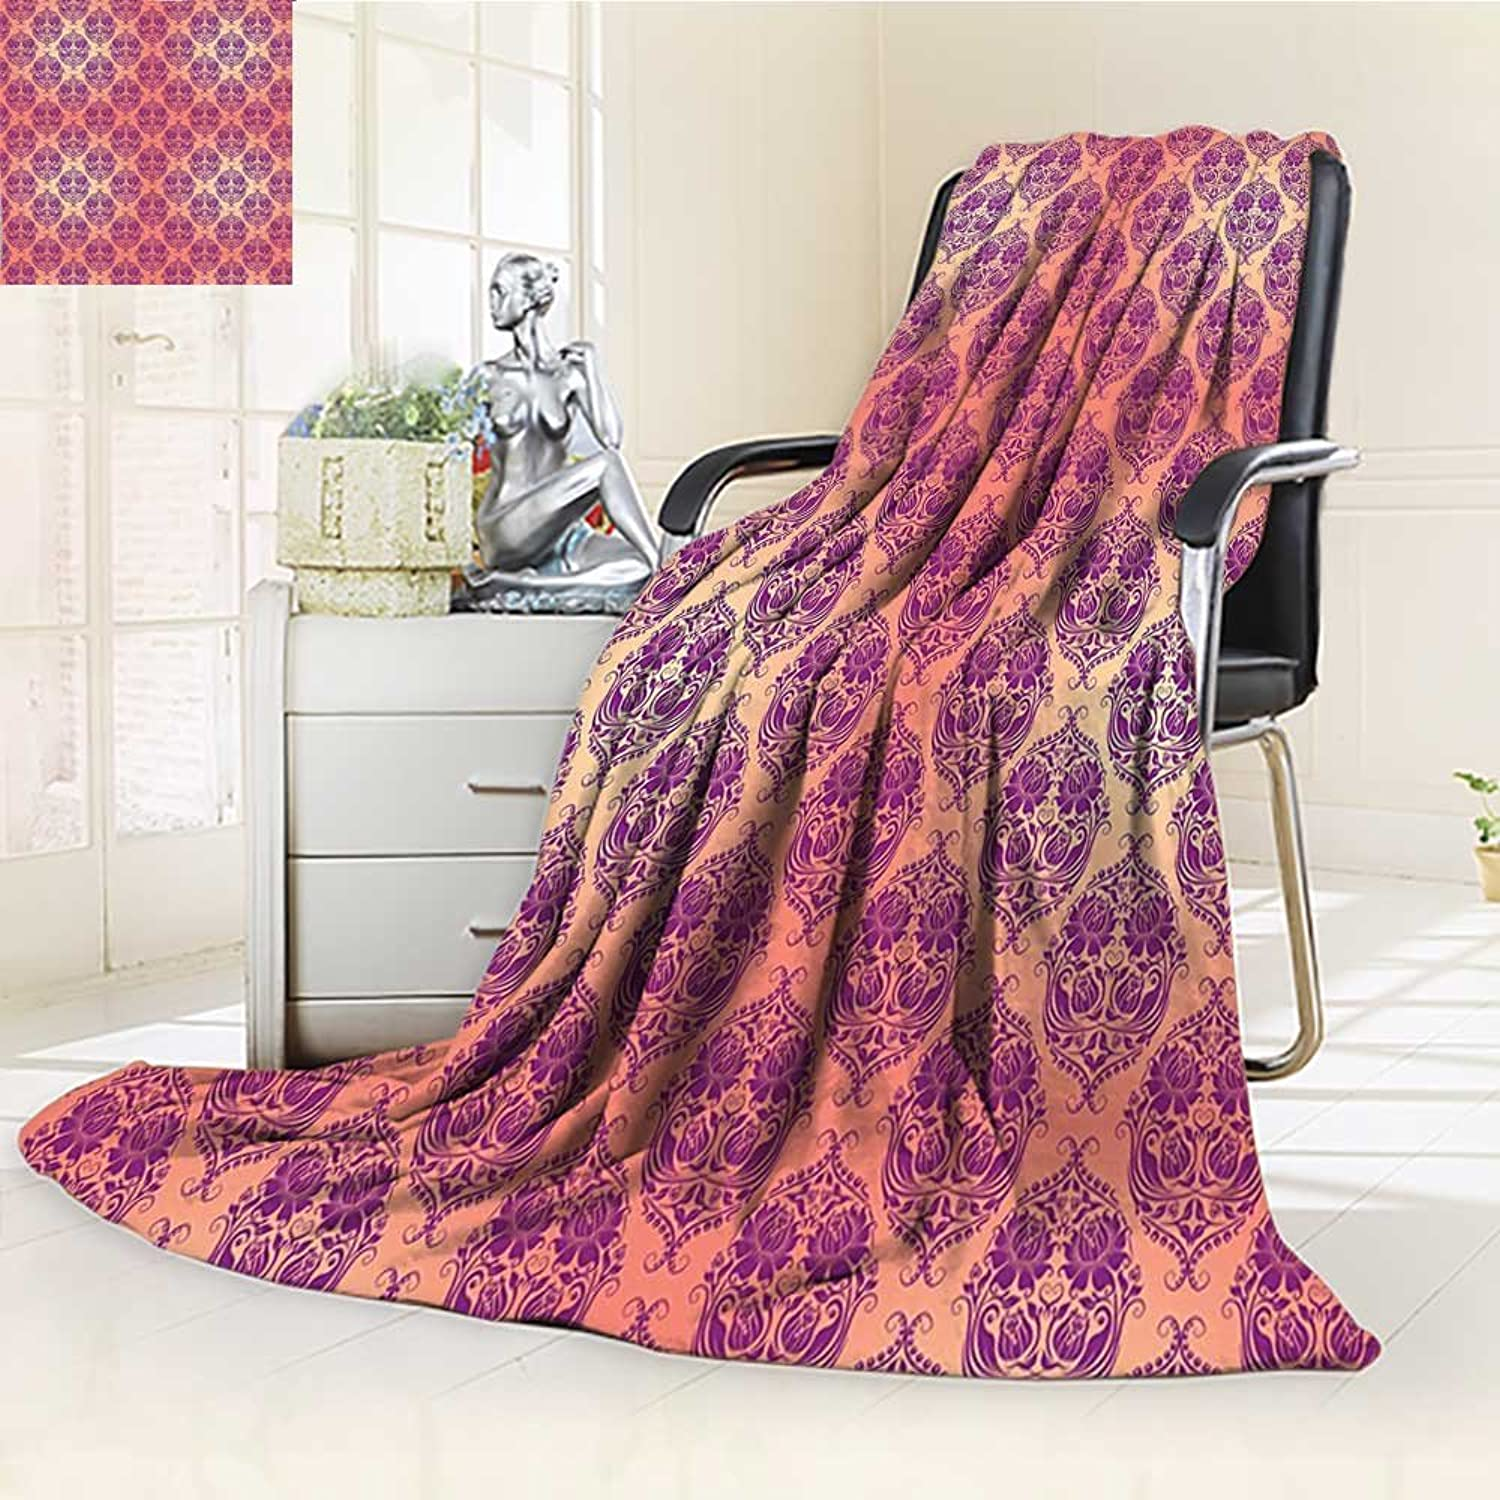 YOYI-HOME Digital Printing Duplex Printed Blanket Damask Flower Featured Classic Damask Themed Pattern Original Royal French Style Mauve Pink Summer Quilt Comforter  W59 x H39.5